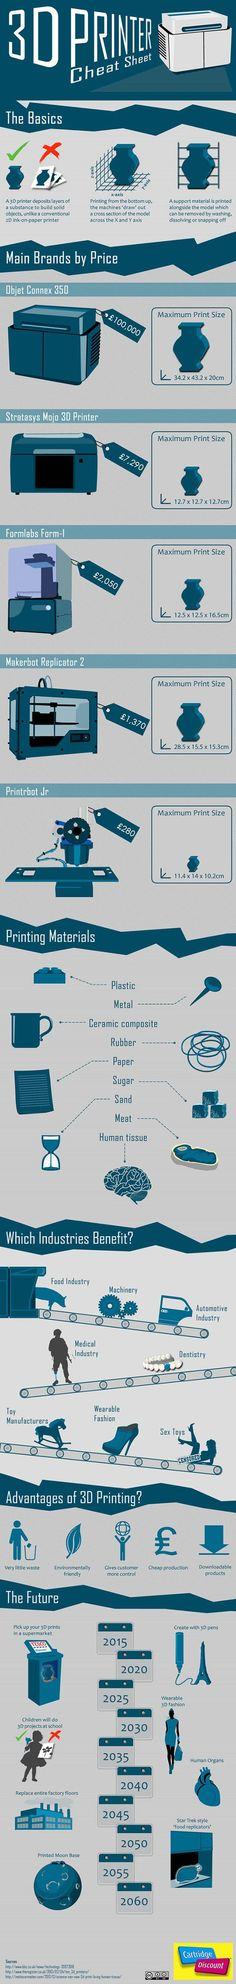 WHAT IS 3D PRINTING? – A 3D PRINTING CHEAT SHEET